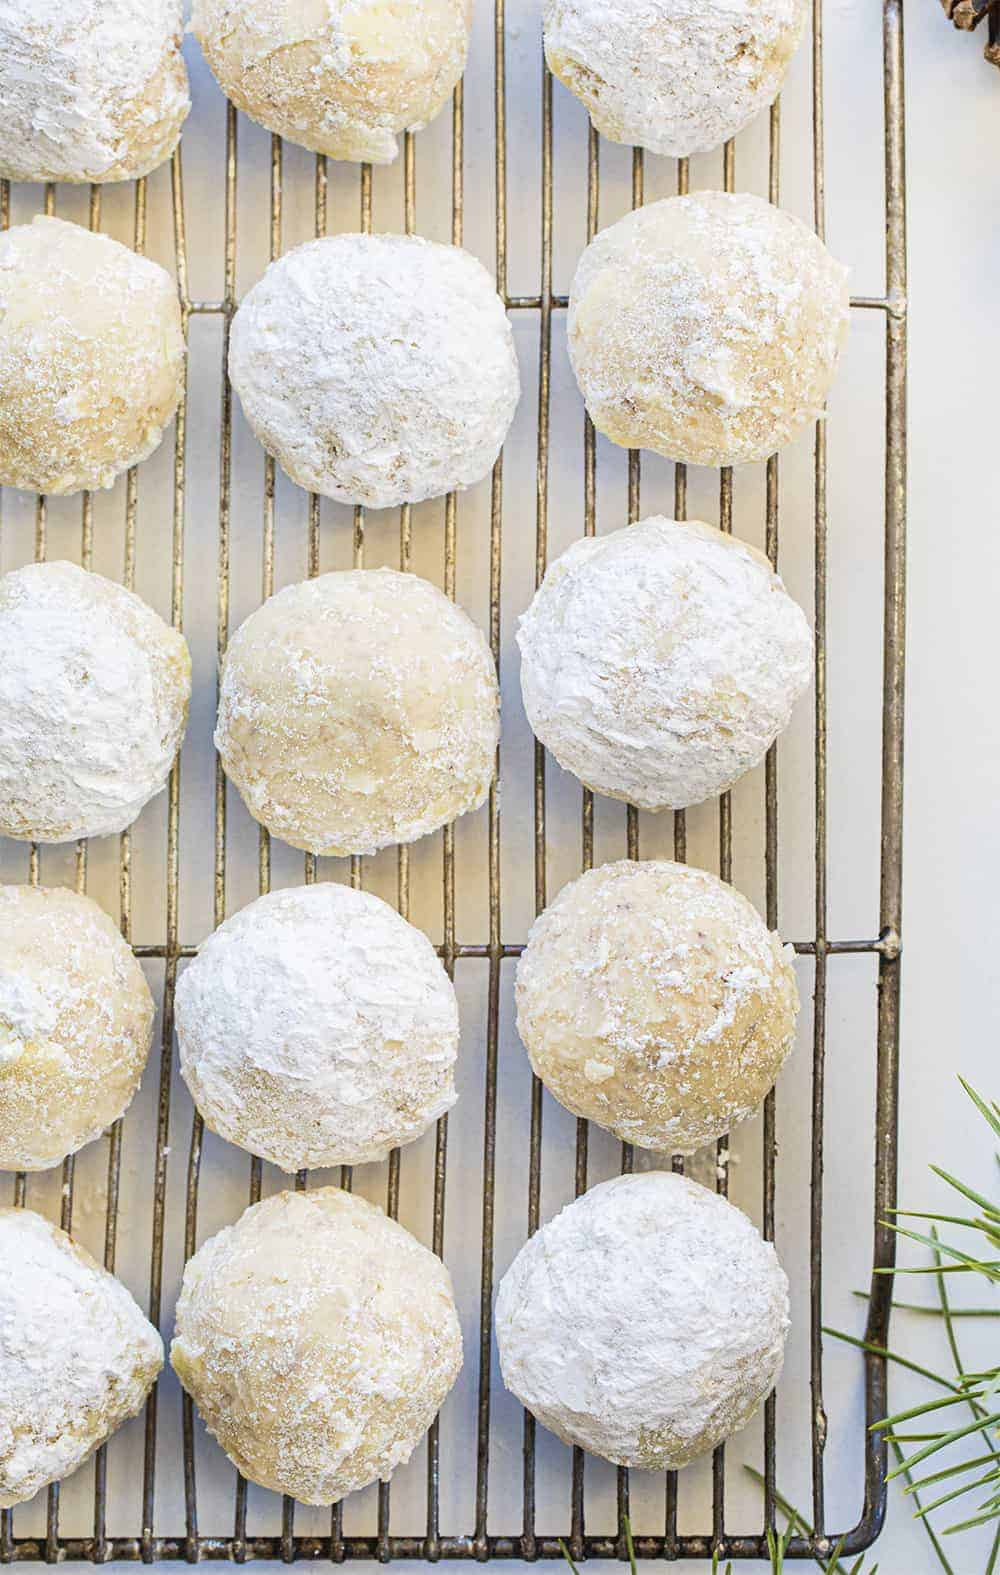 Snowball Cookies - Mexican Wedding Cookies Recipe on Cooling Rack